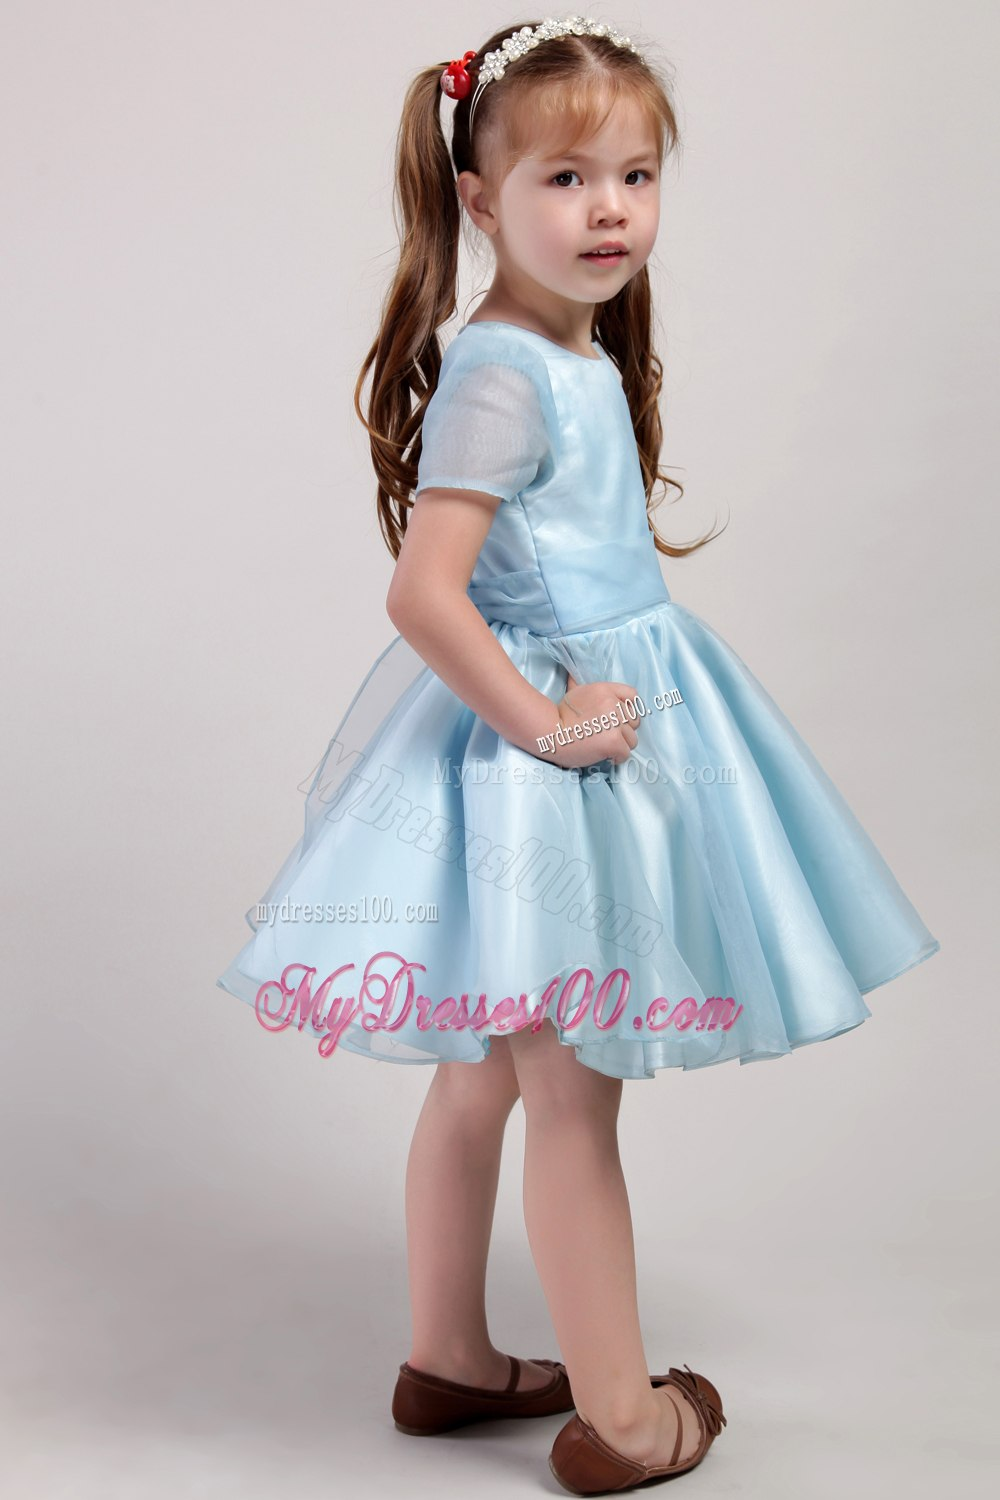 Fall Color Dresses For Little Girls Bowknot Little Girl Dress